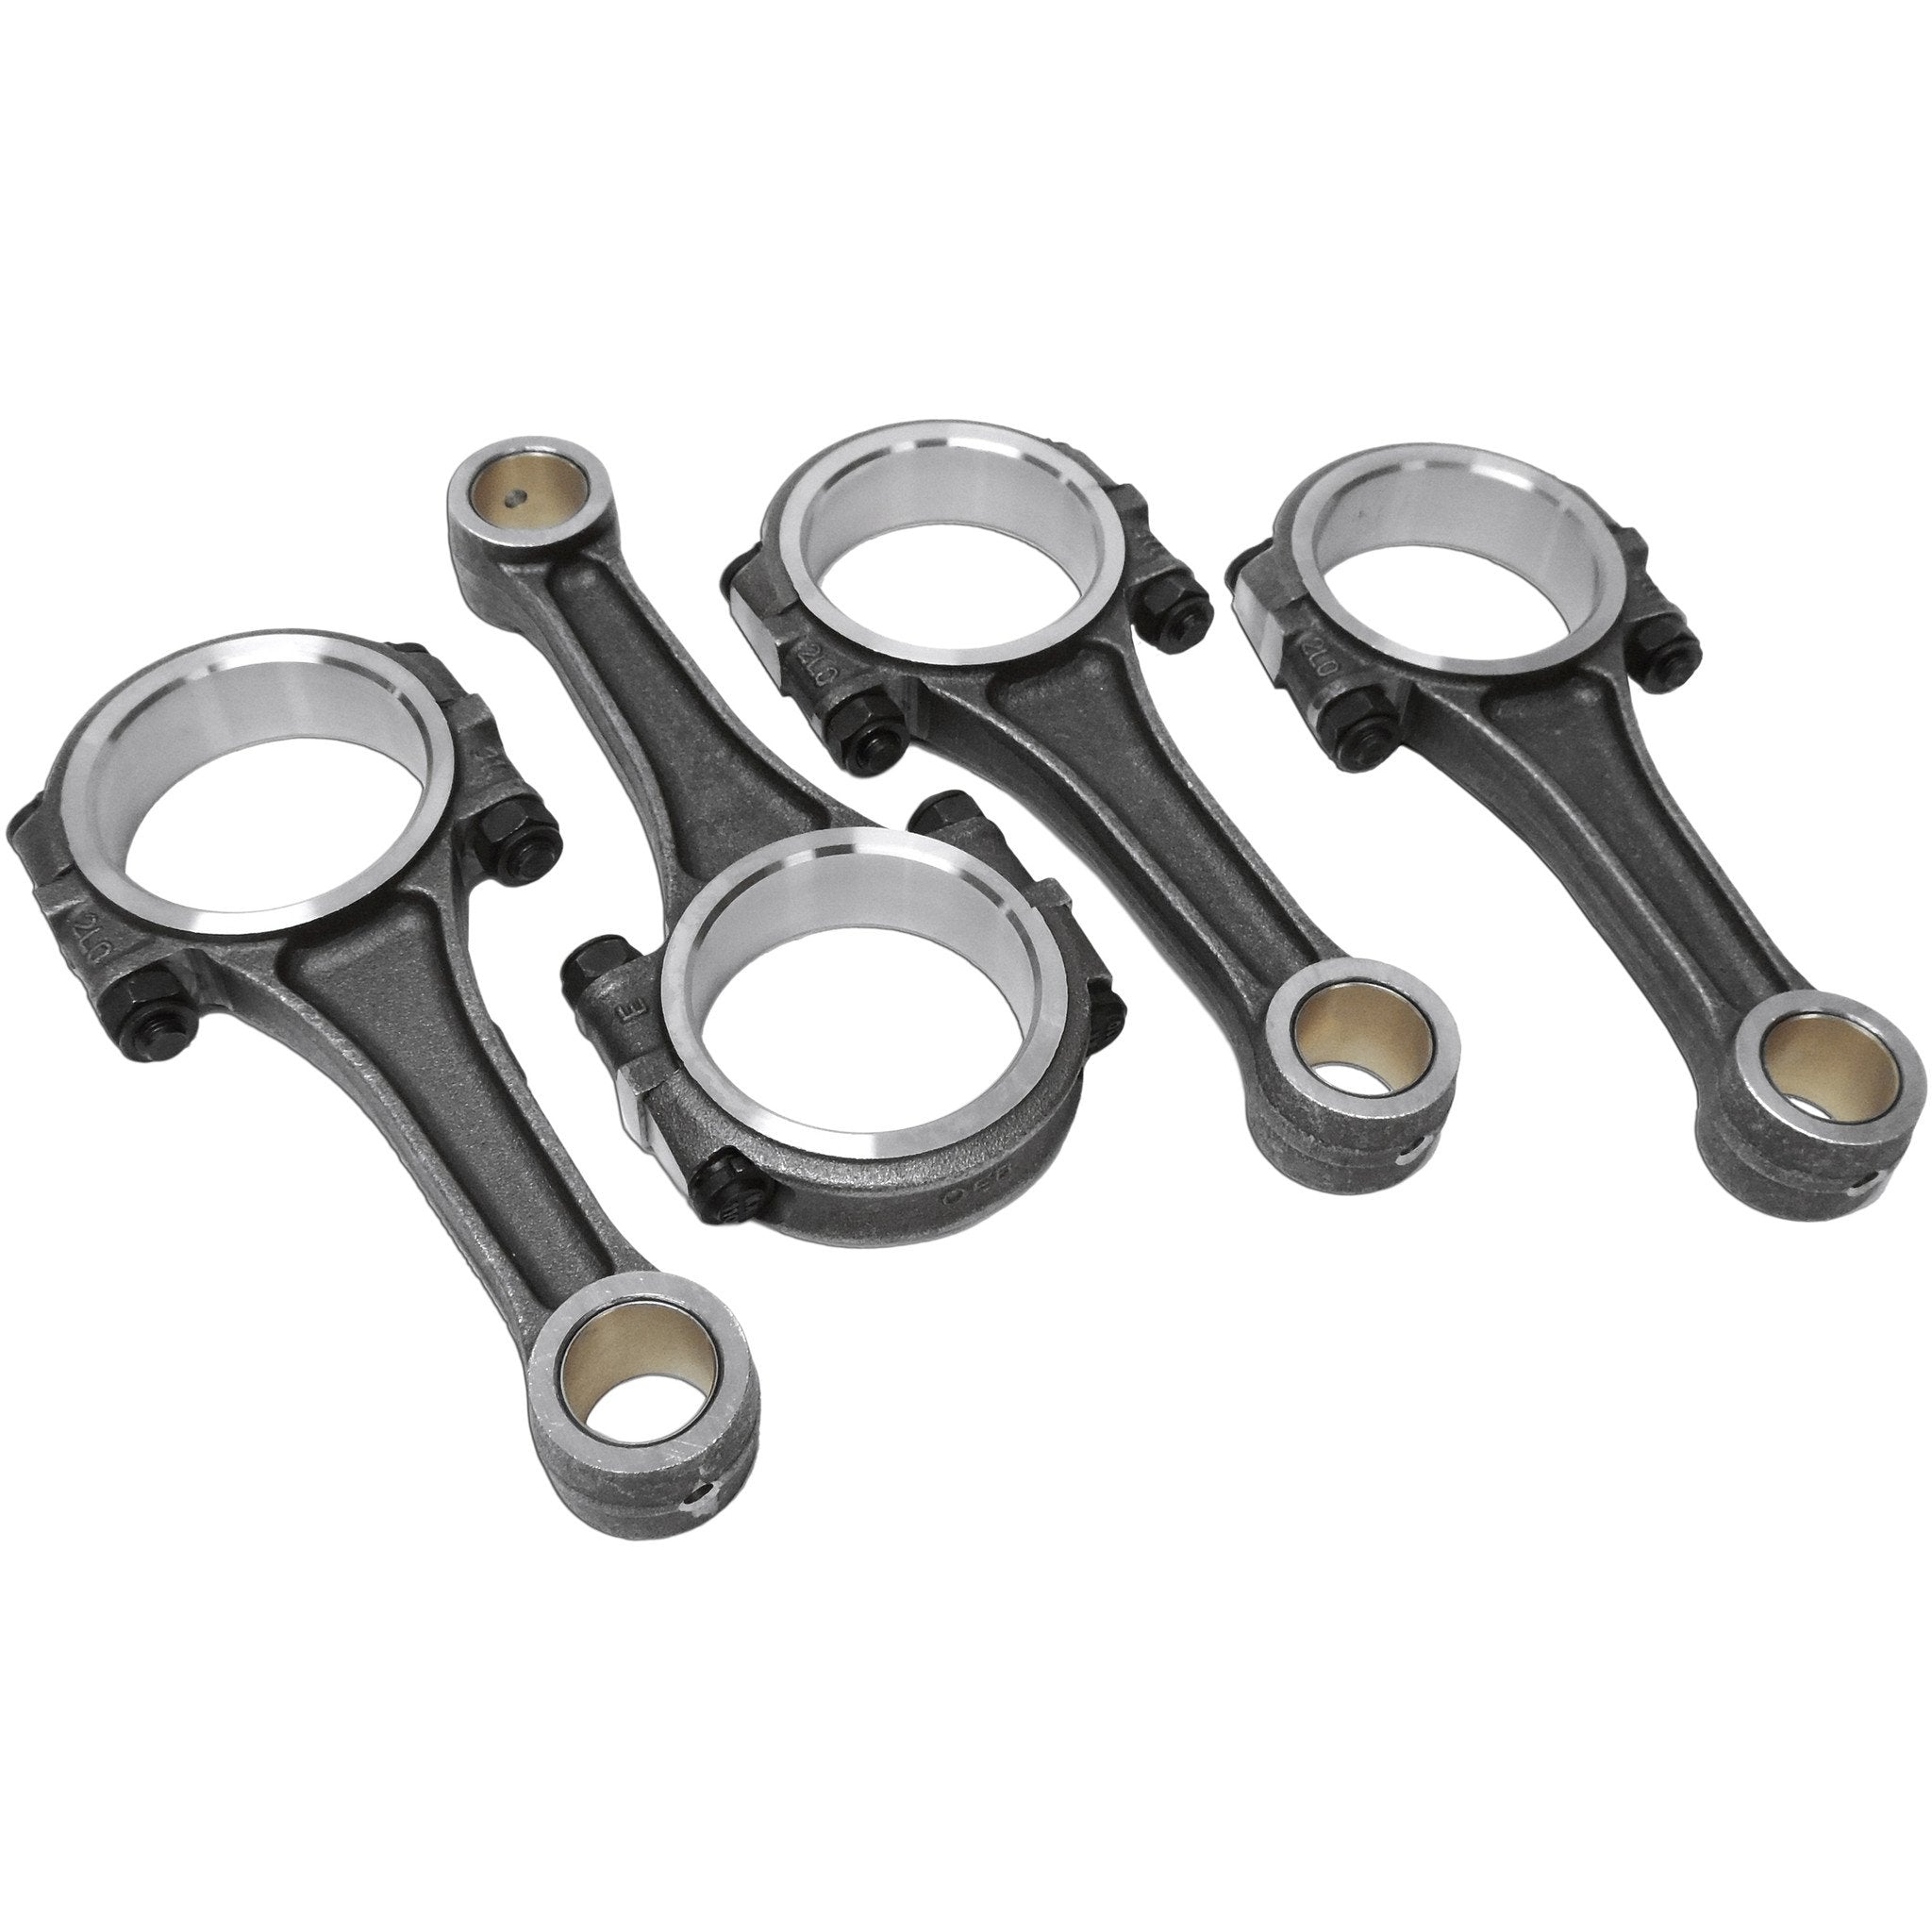 """Vw 1600 Connecting Rods: 5.394"""" Stock Replacement VW Rod Set"""